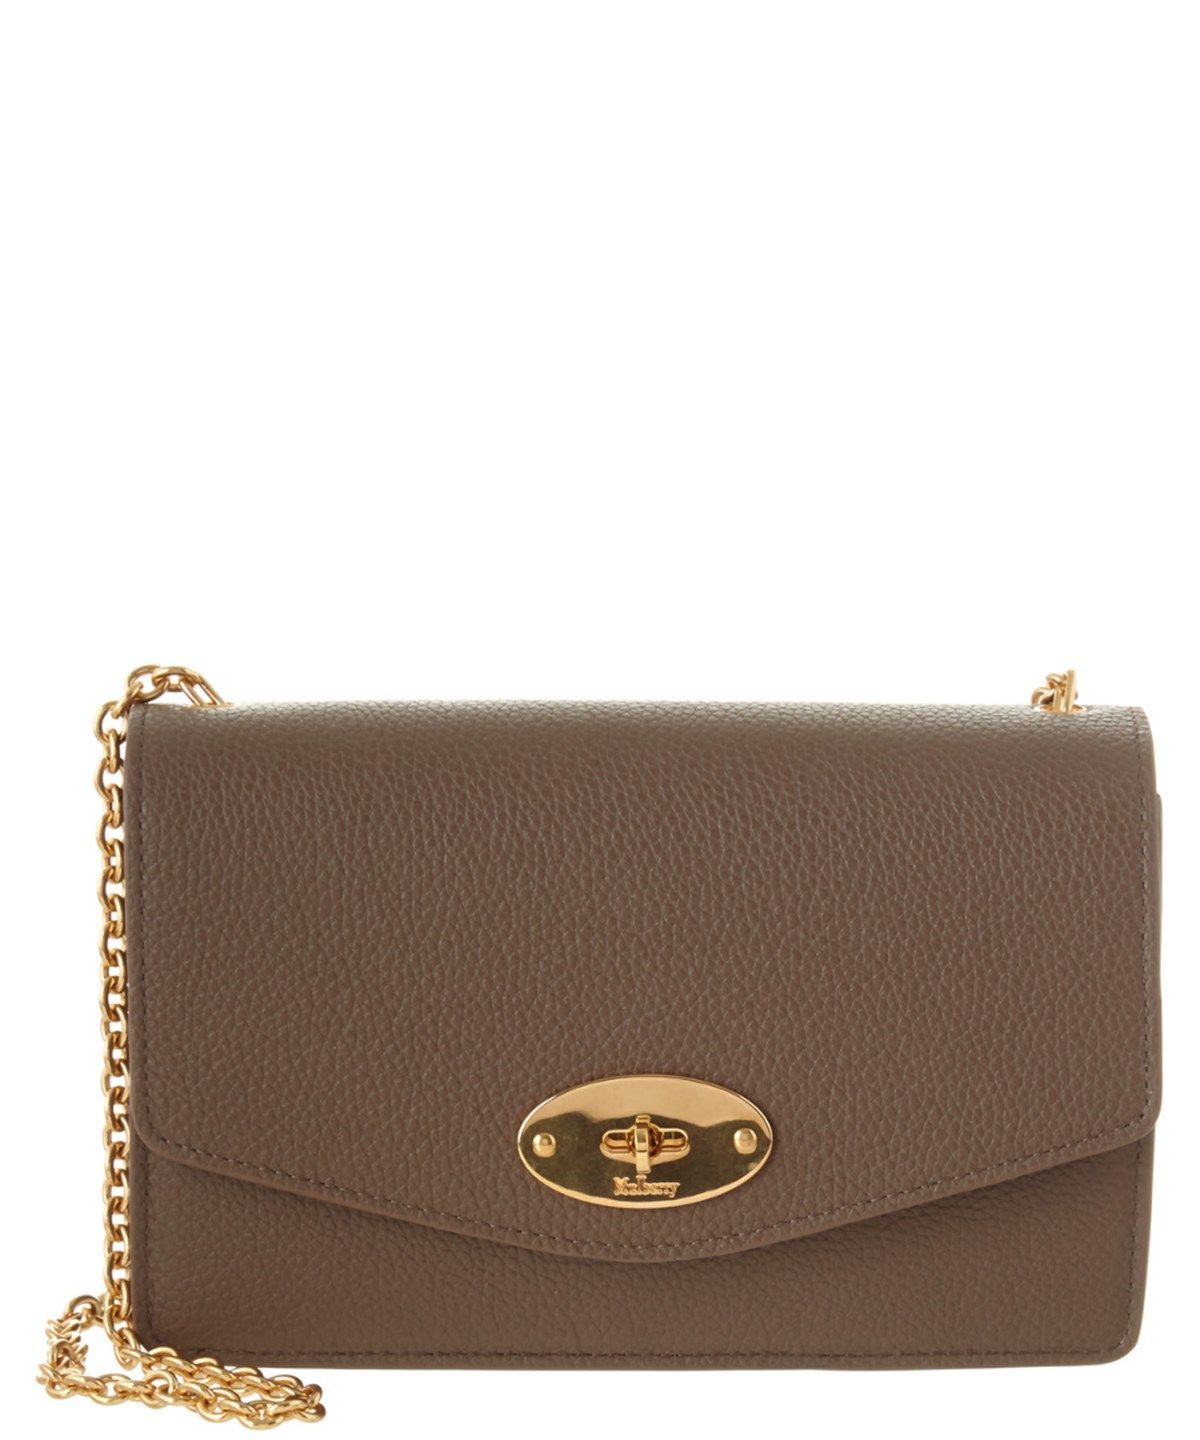 MULBERRY Mulberry Darley Small Classic Grain Leather Crossbody'. #mulberry #bags #shoulder bags #leather #crossbody #lining # #mulberrybag